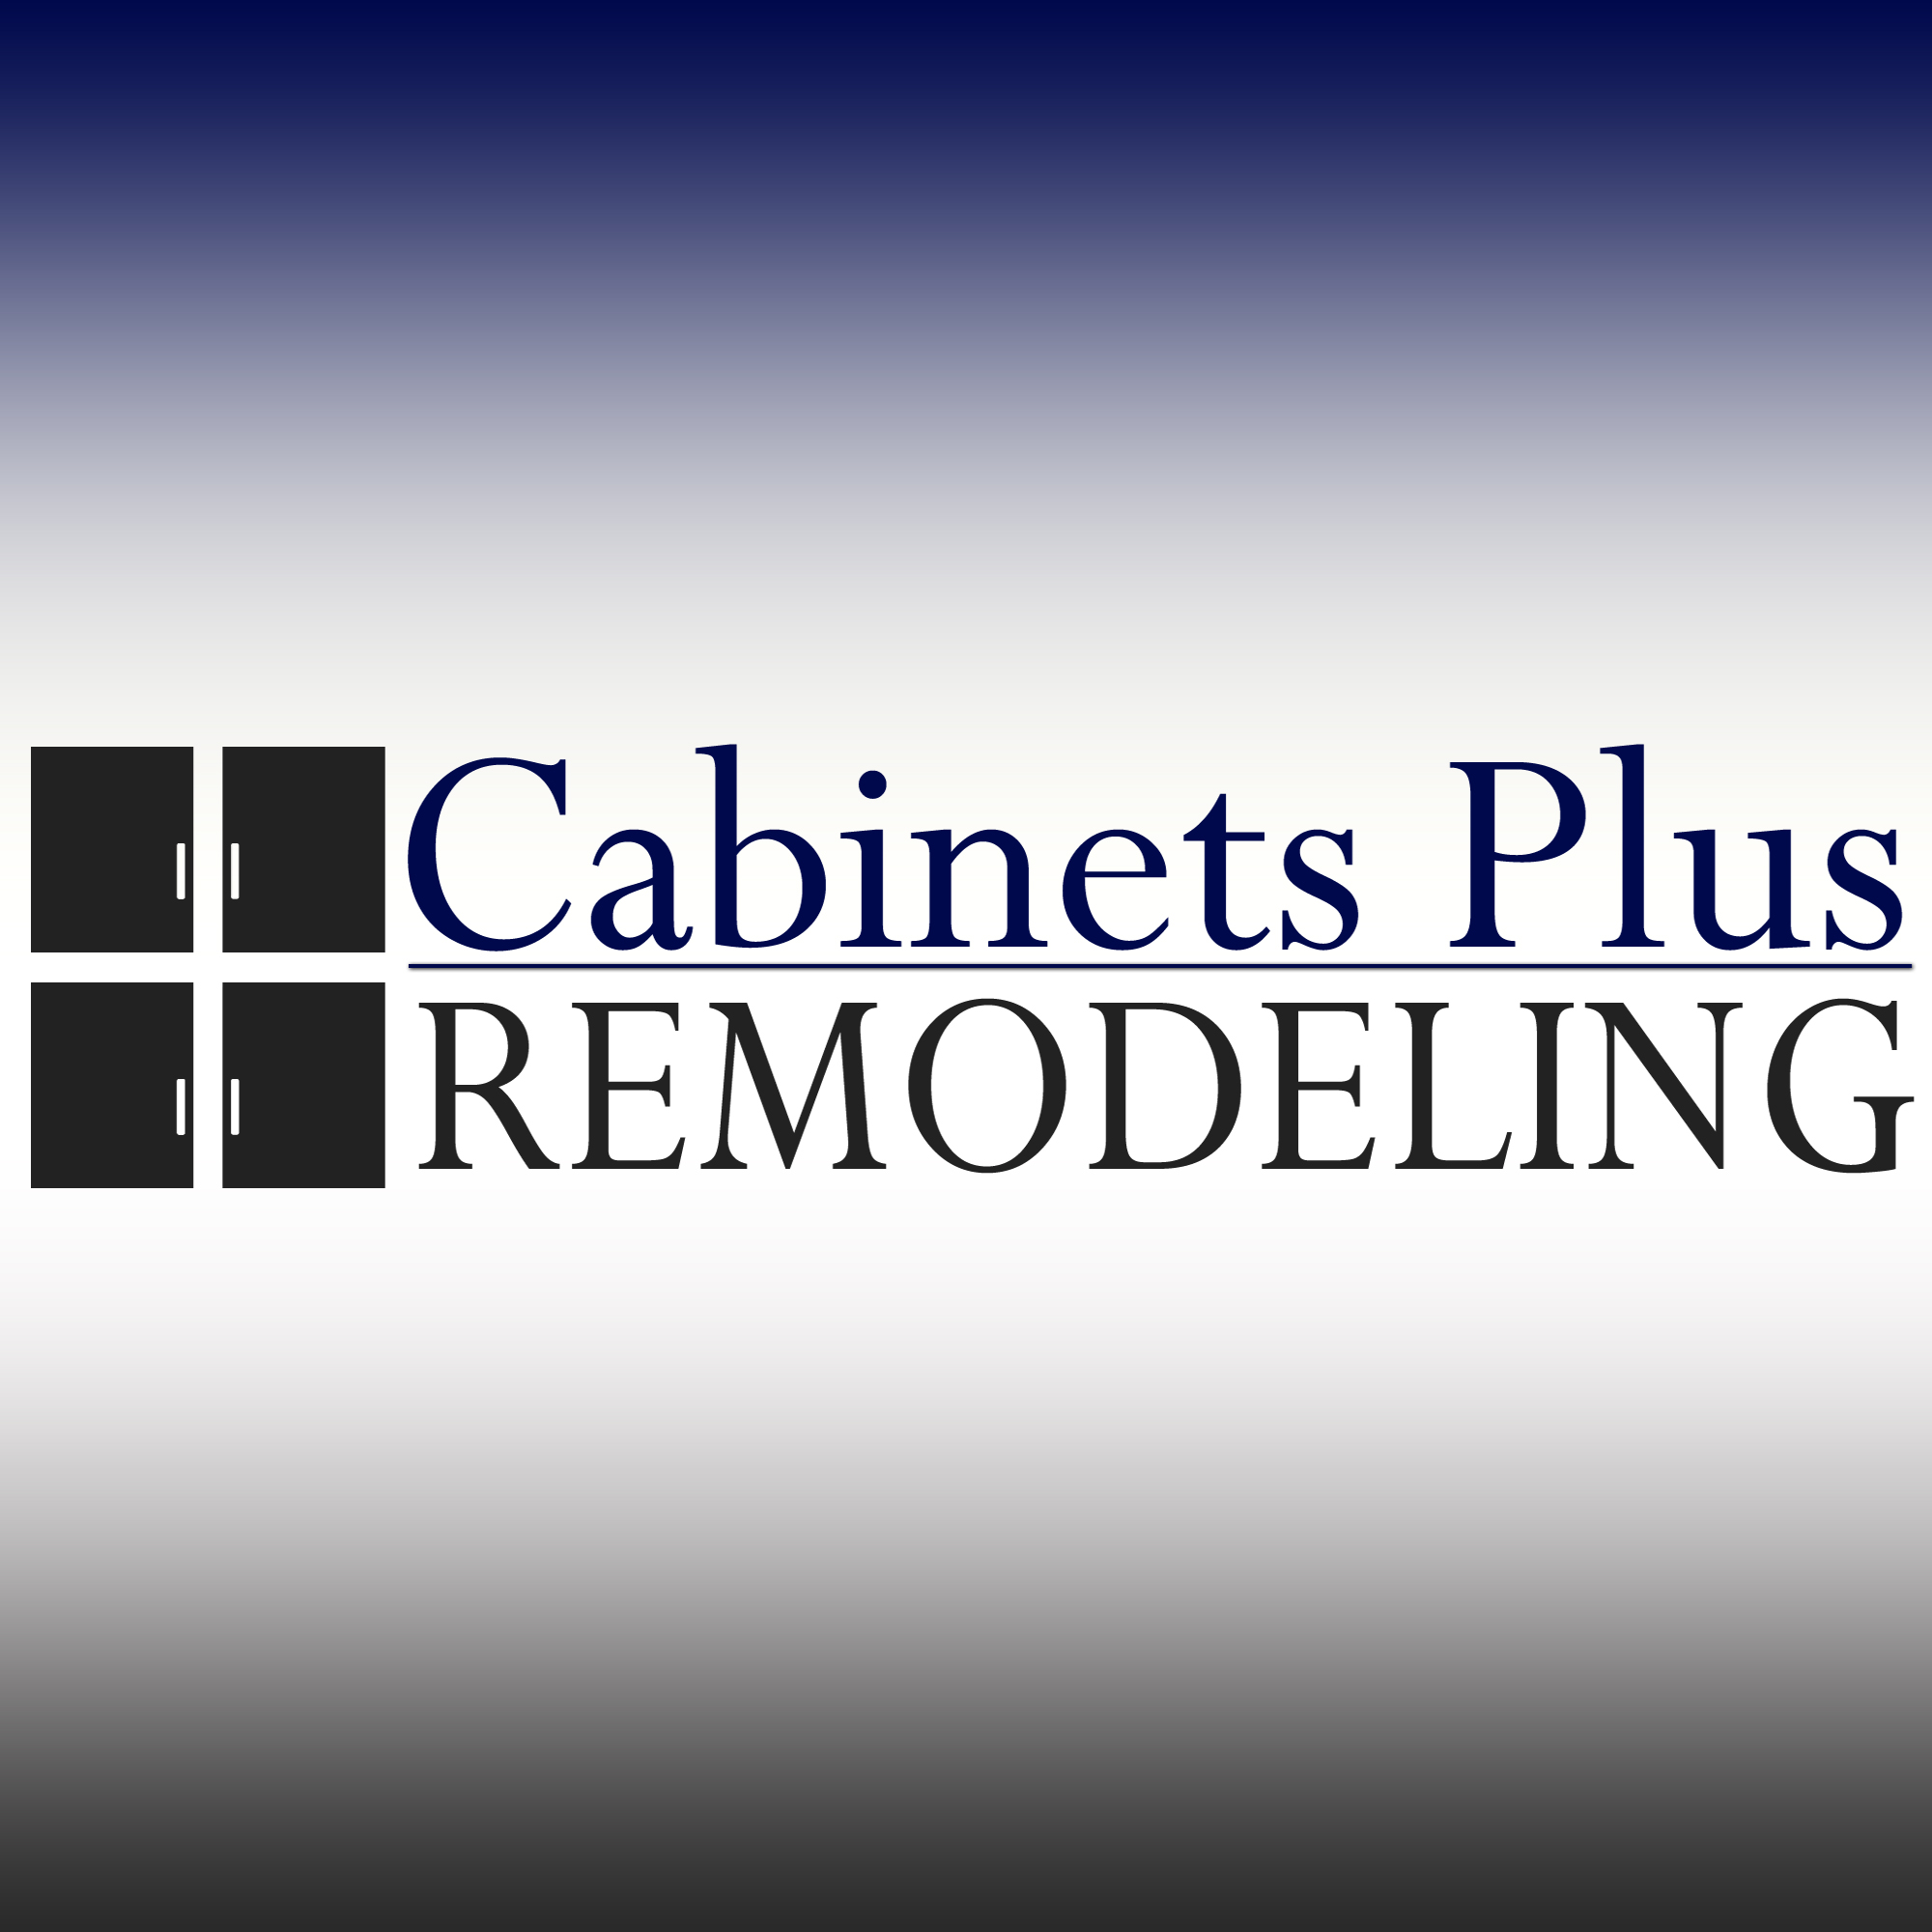 Cabinets Plus Remodeling logo